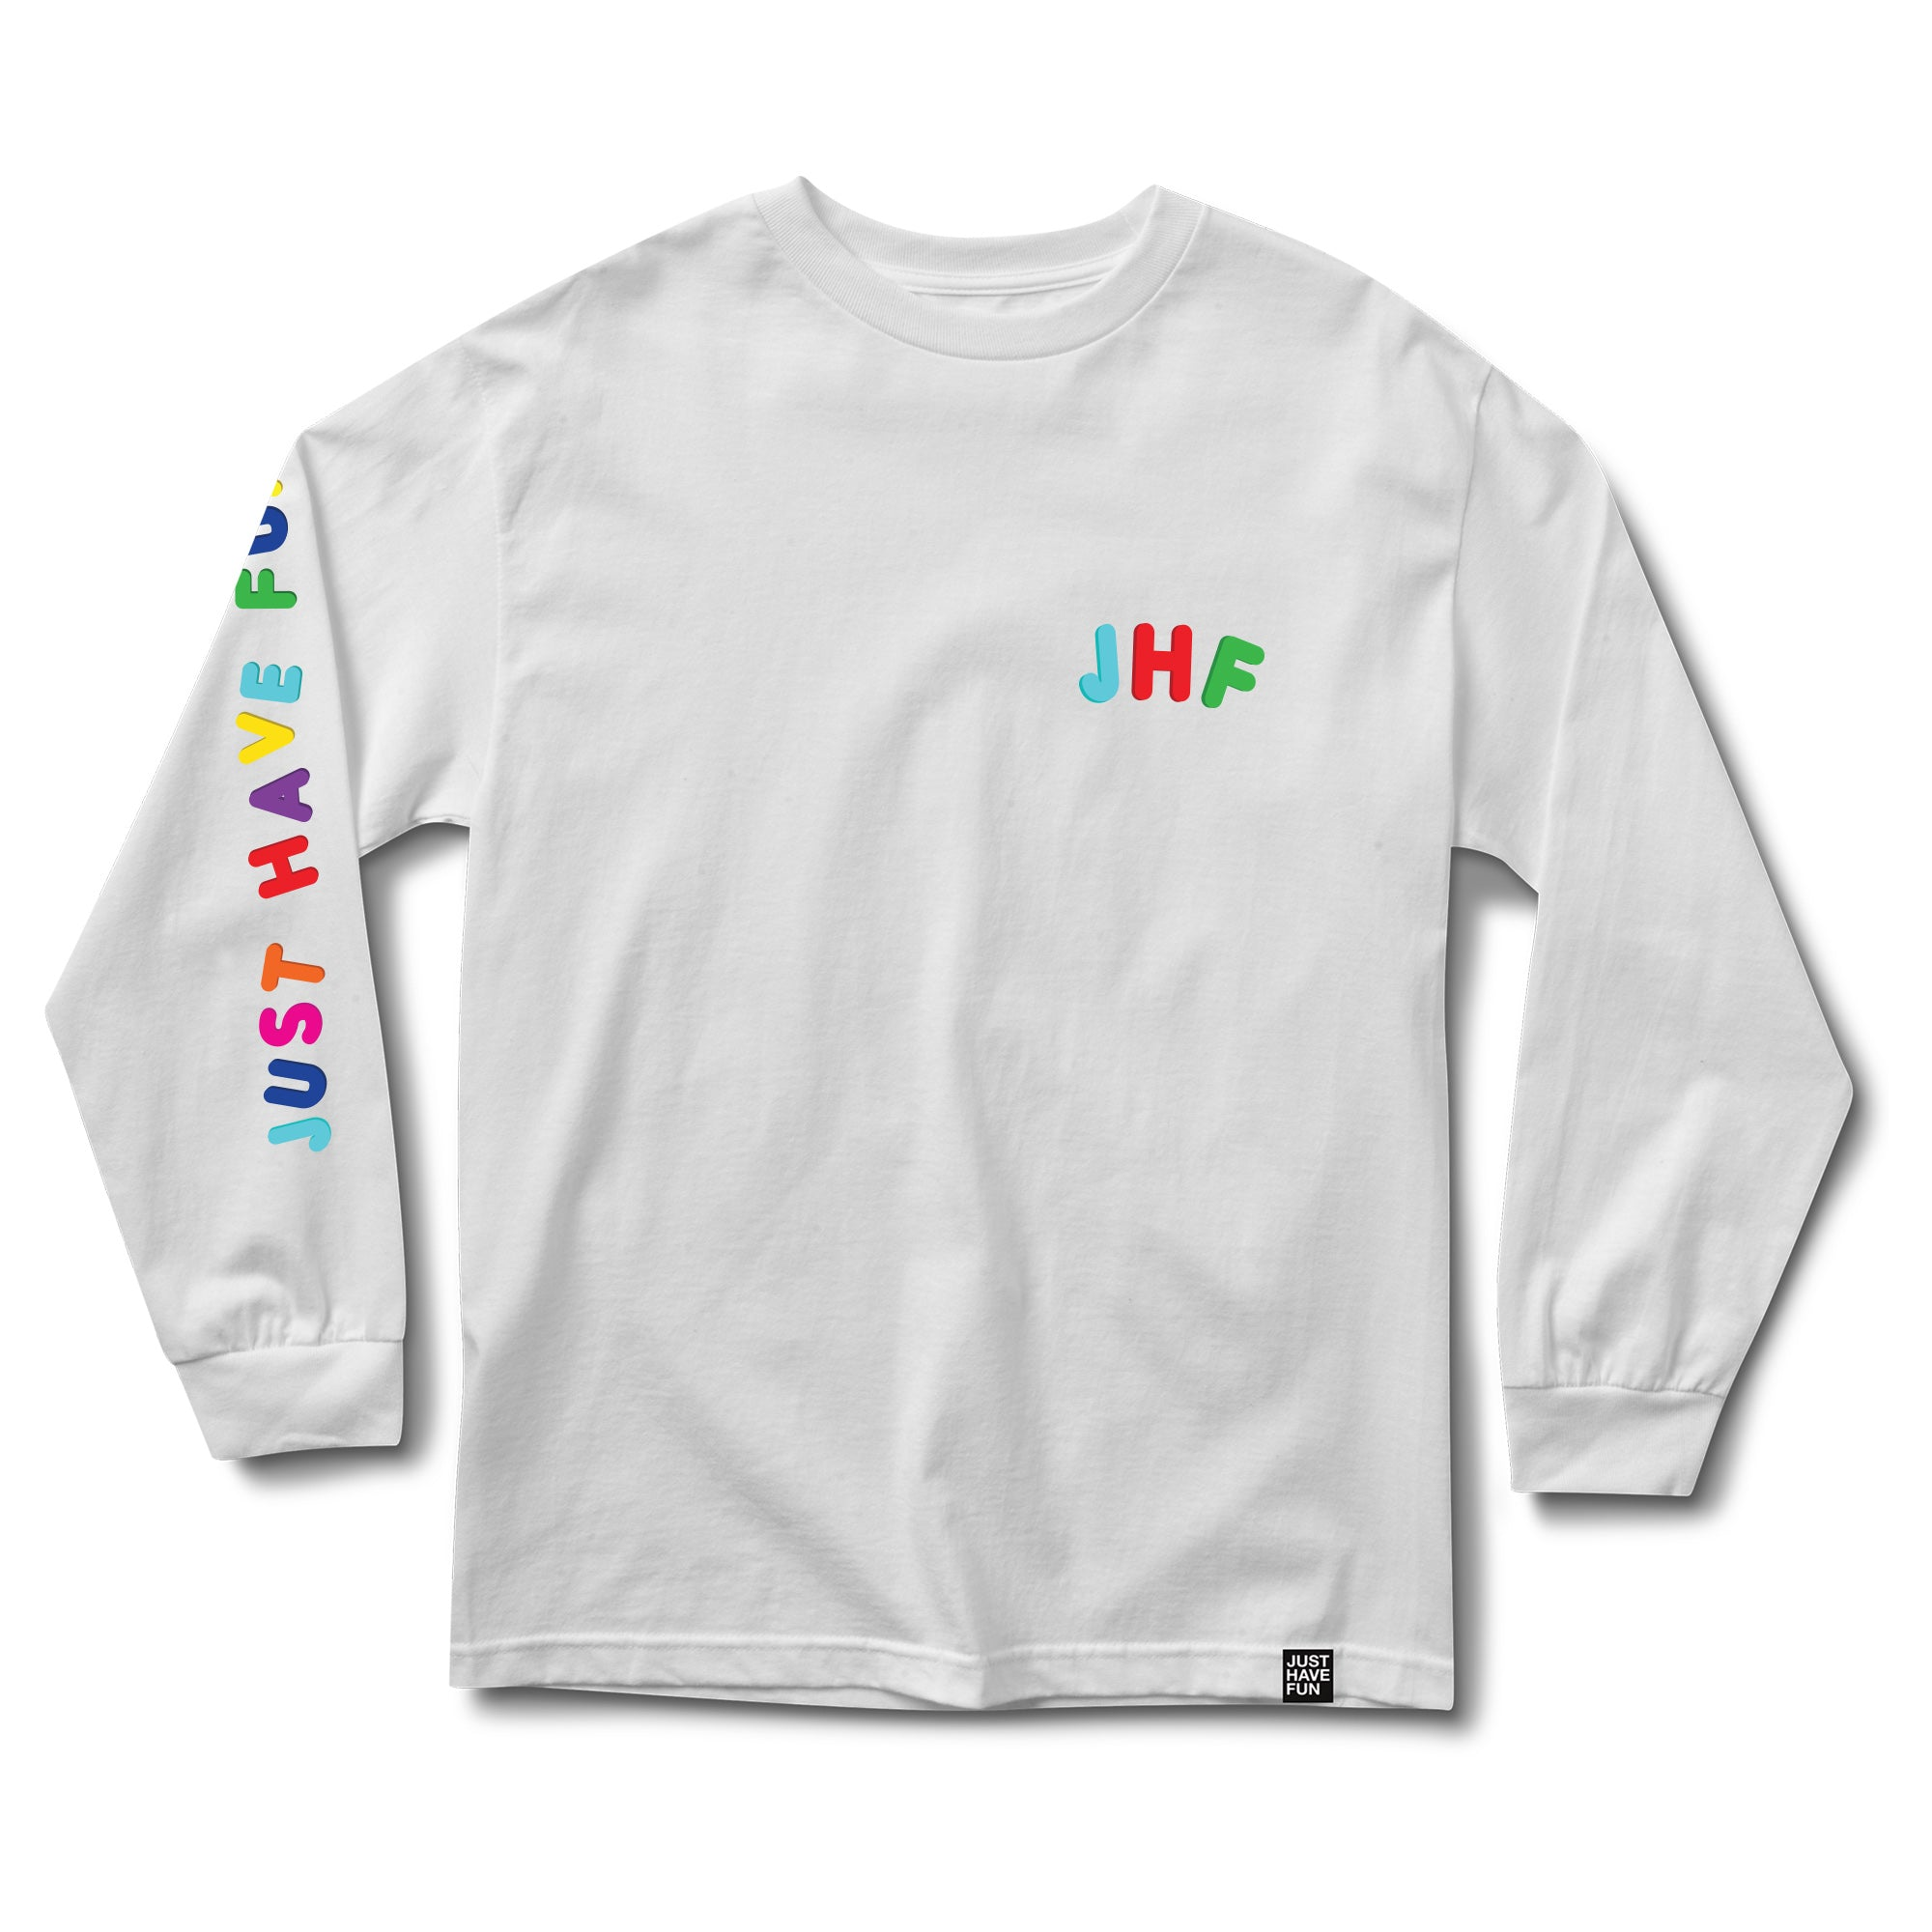 Hold Up Long Sleeve White